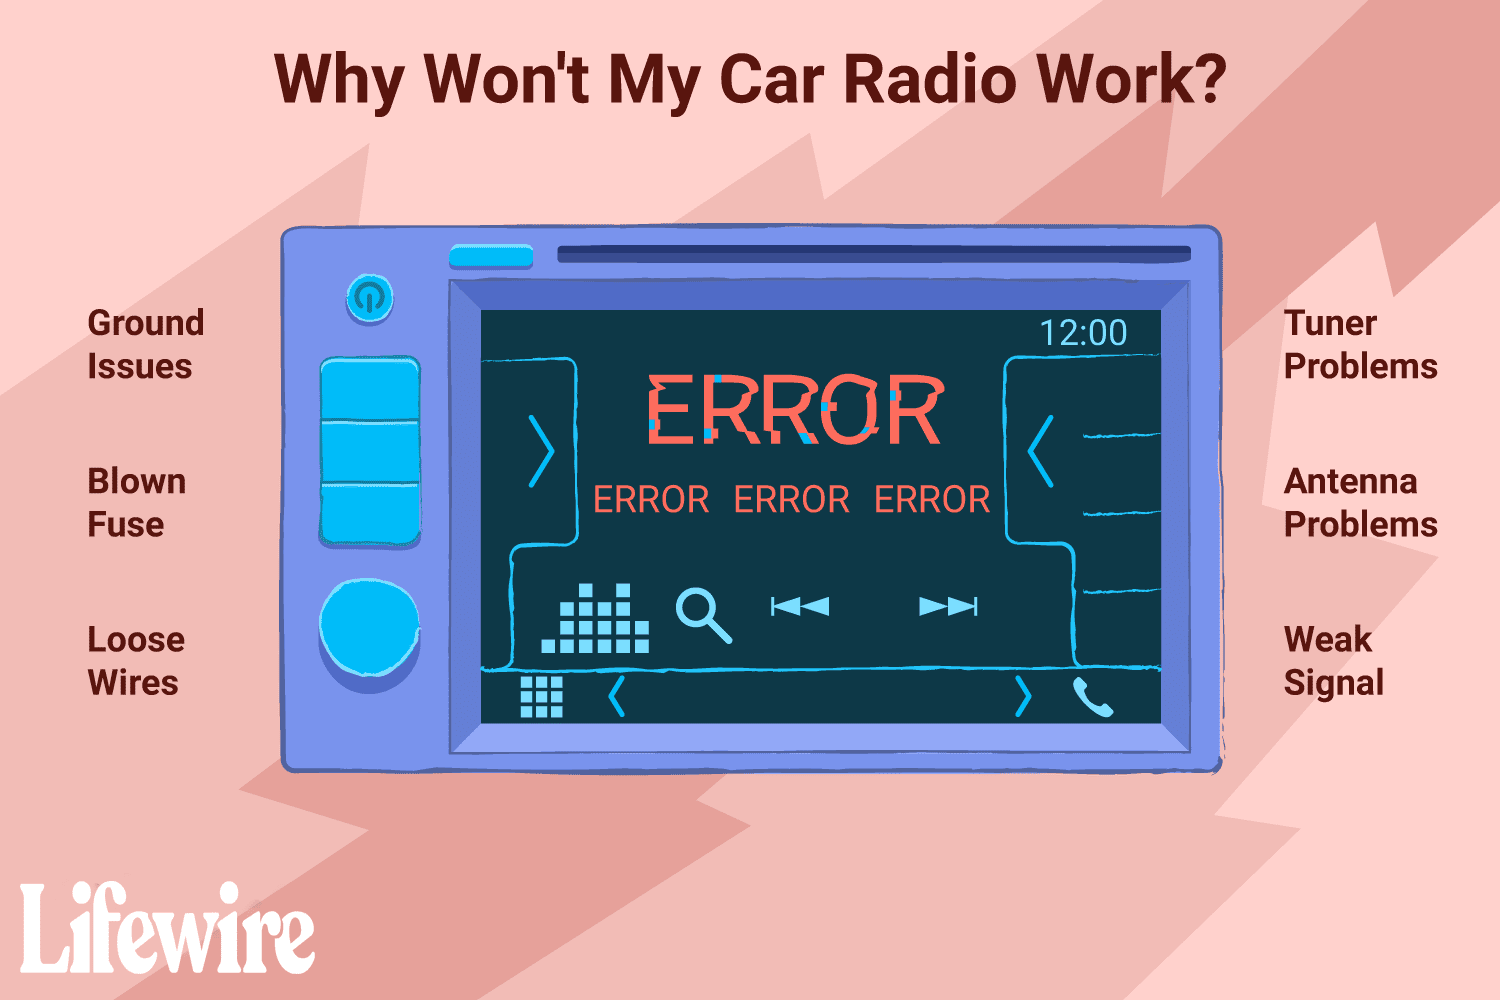 An illustration showing a car radio that won't work and the reasons why.